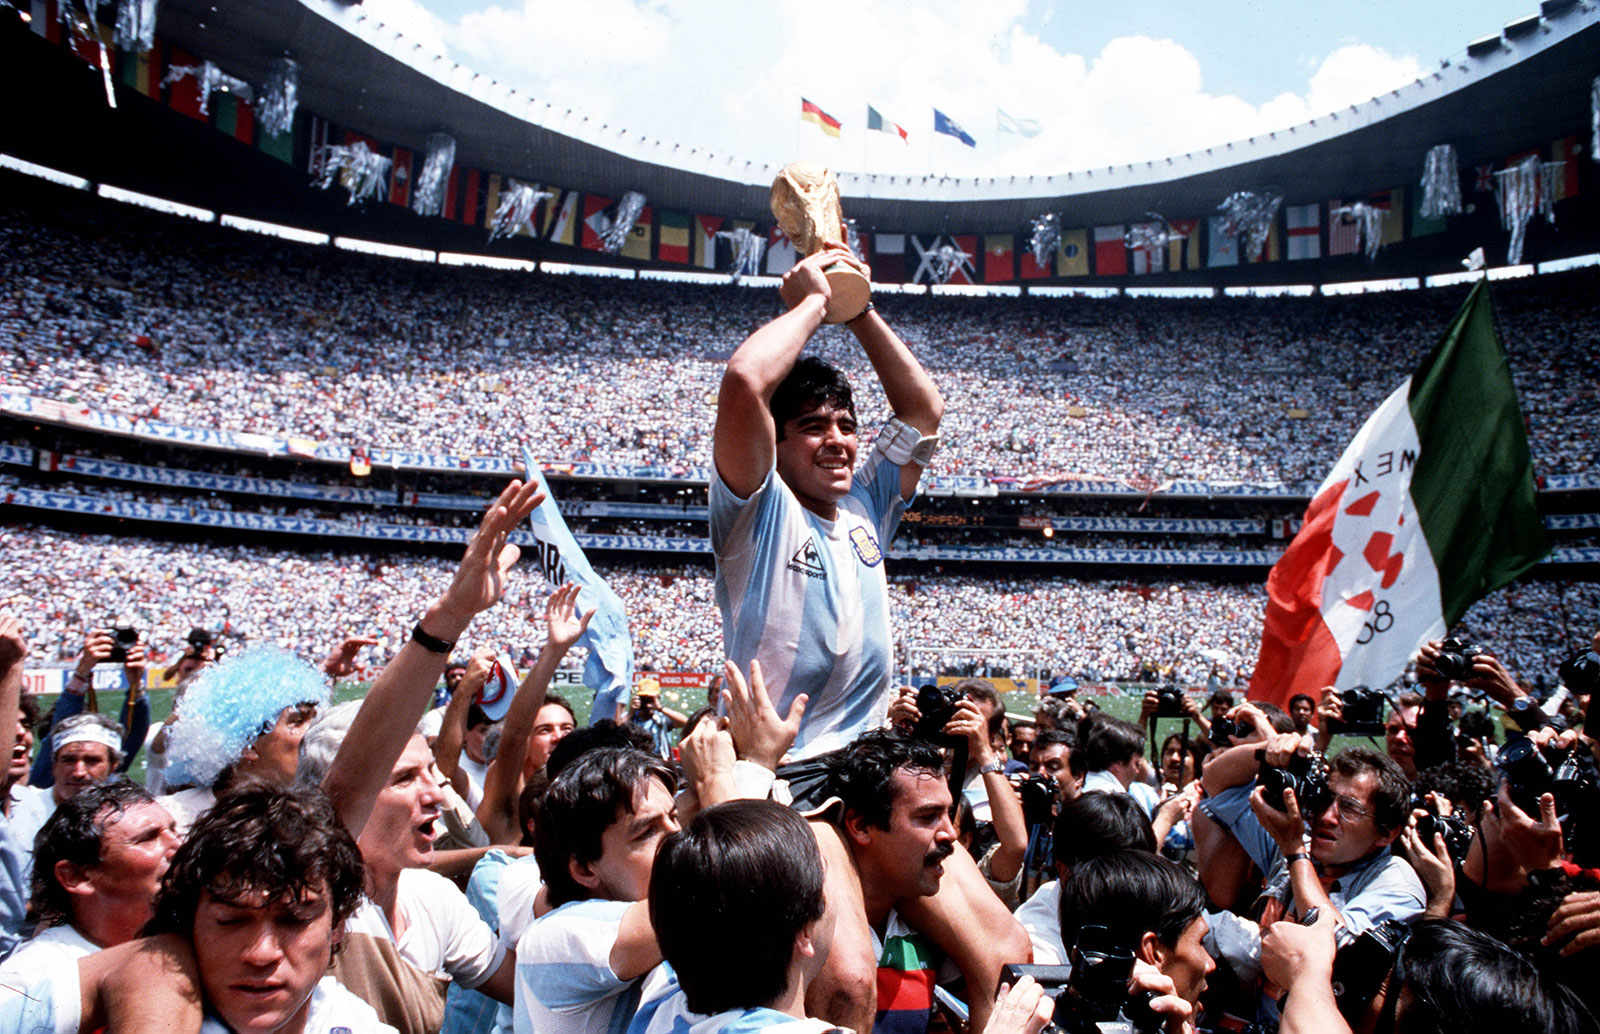 Diego Maradona lifts the World Cup trophy